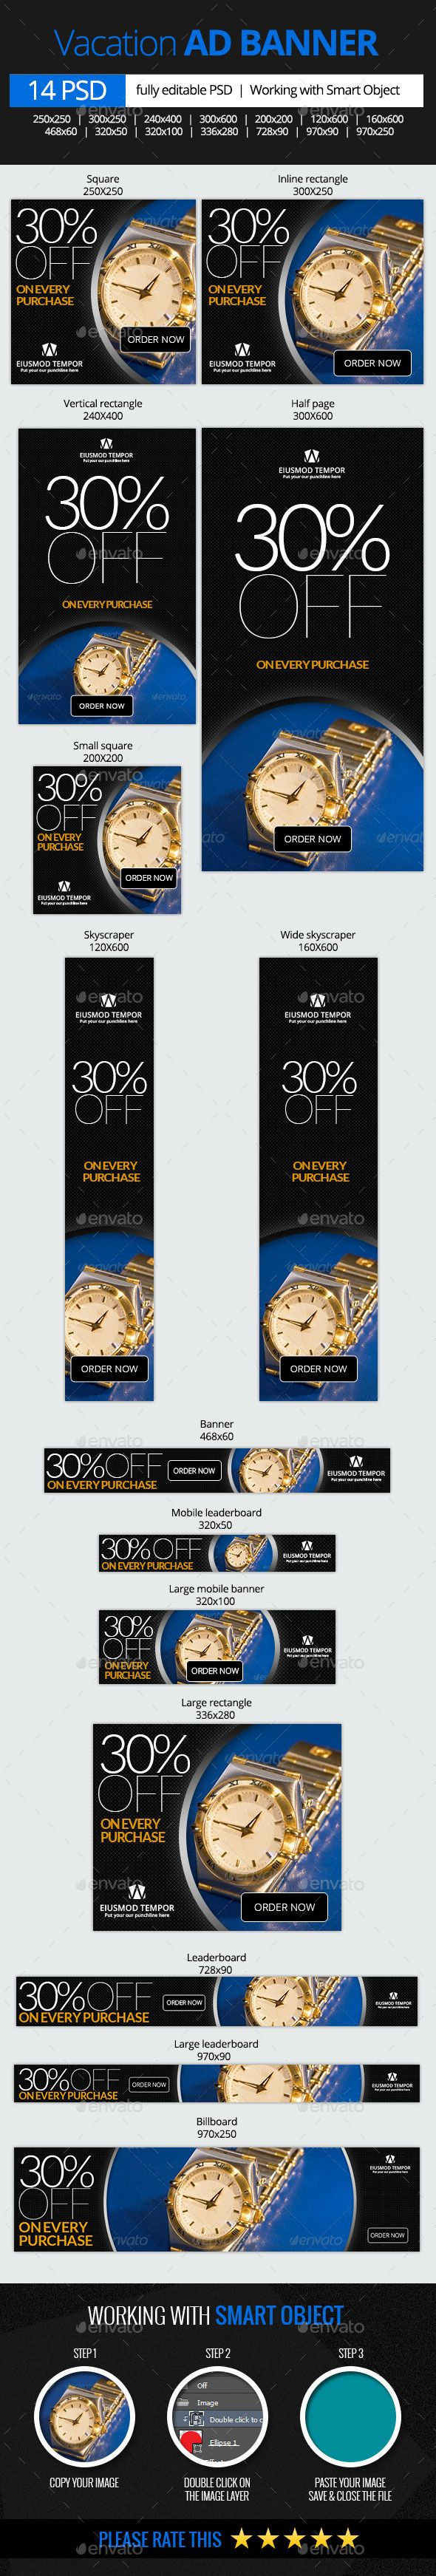 Retail Product Offer Banners | Download: http://graphicriver.net/item/retail-product-offer-banners/10254694?ref=ksioks